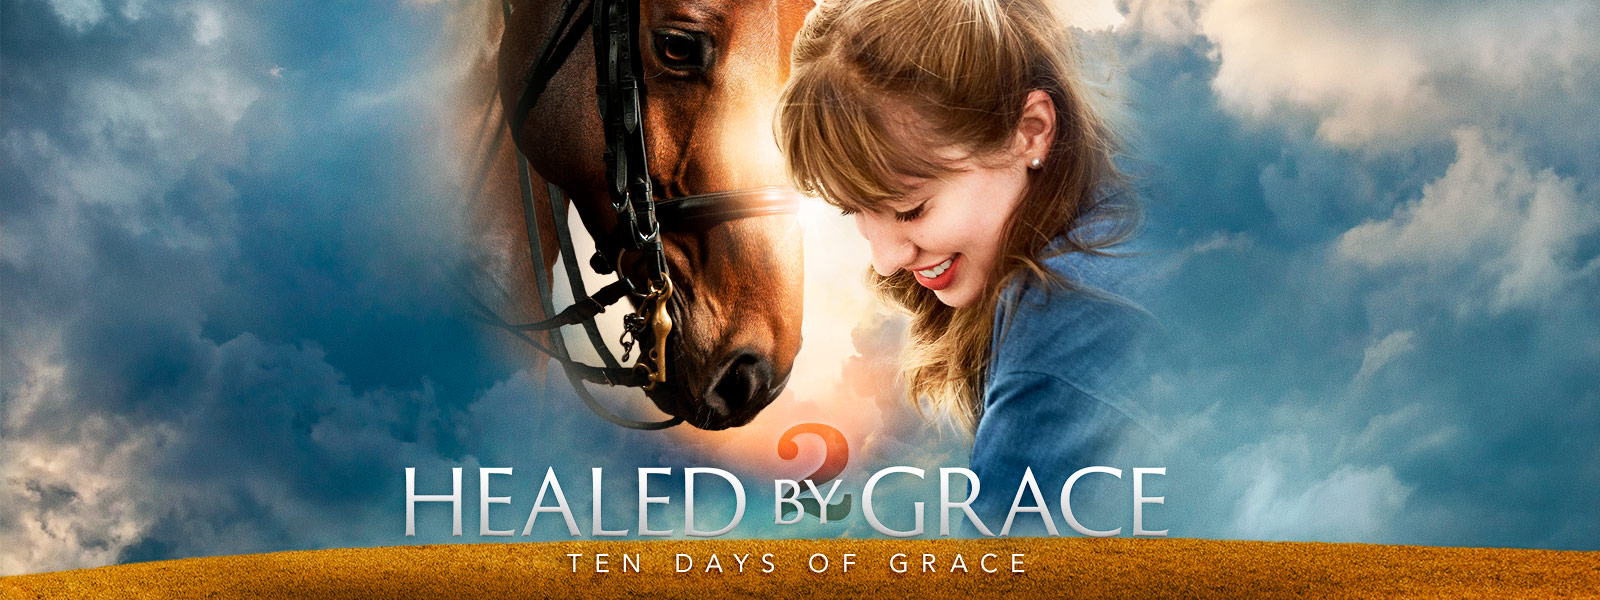 healed by grace header